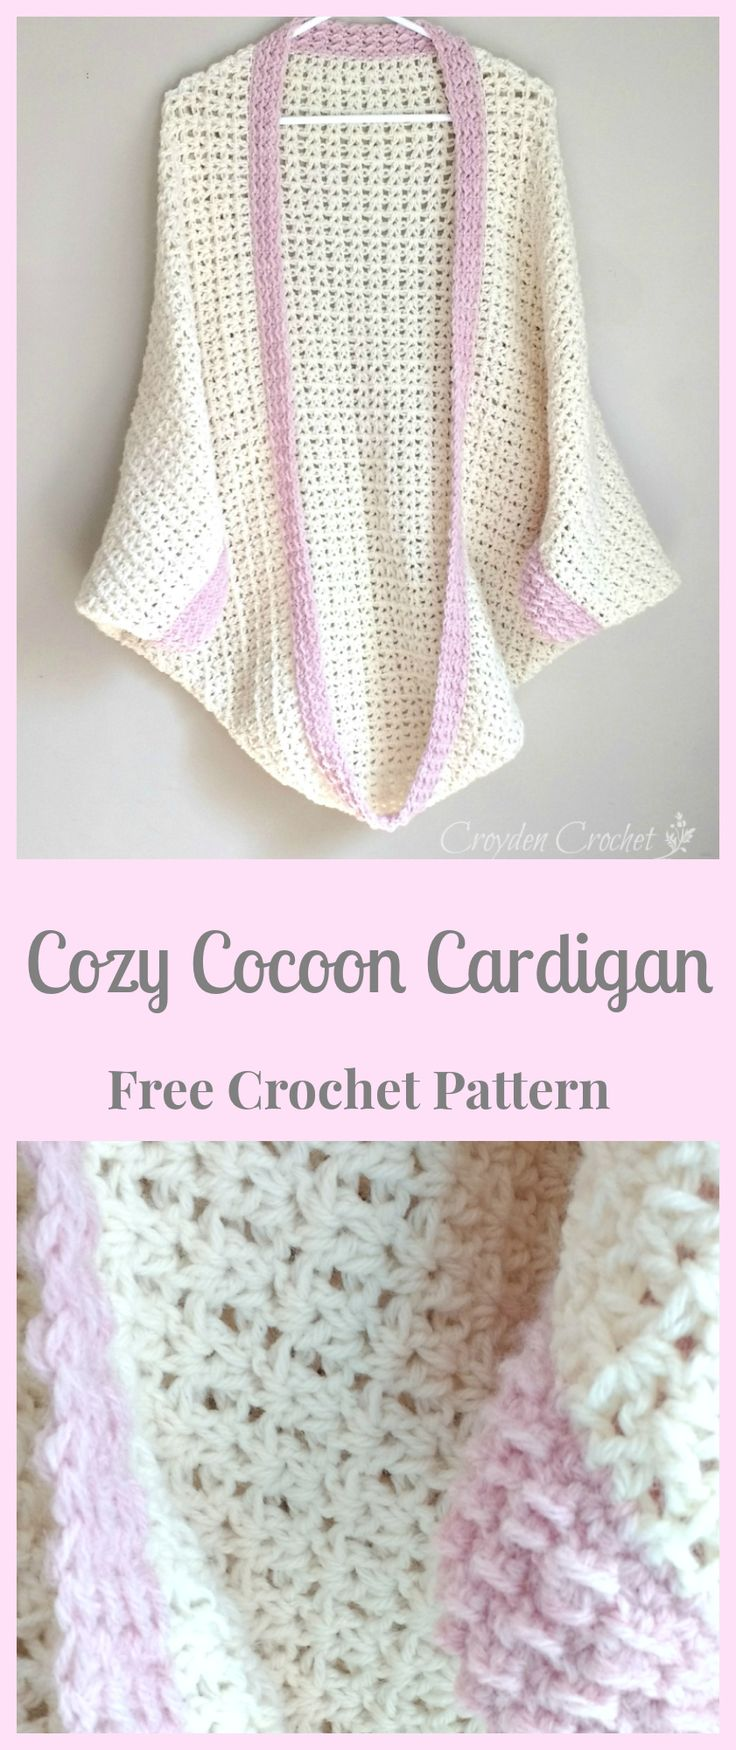 V-stitch cocoon cardigan/shrug w/pink trim.